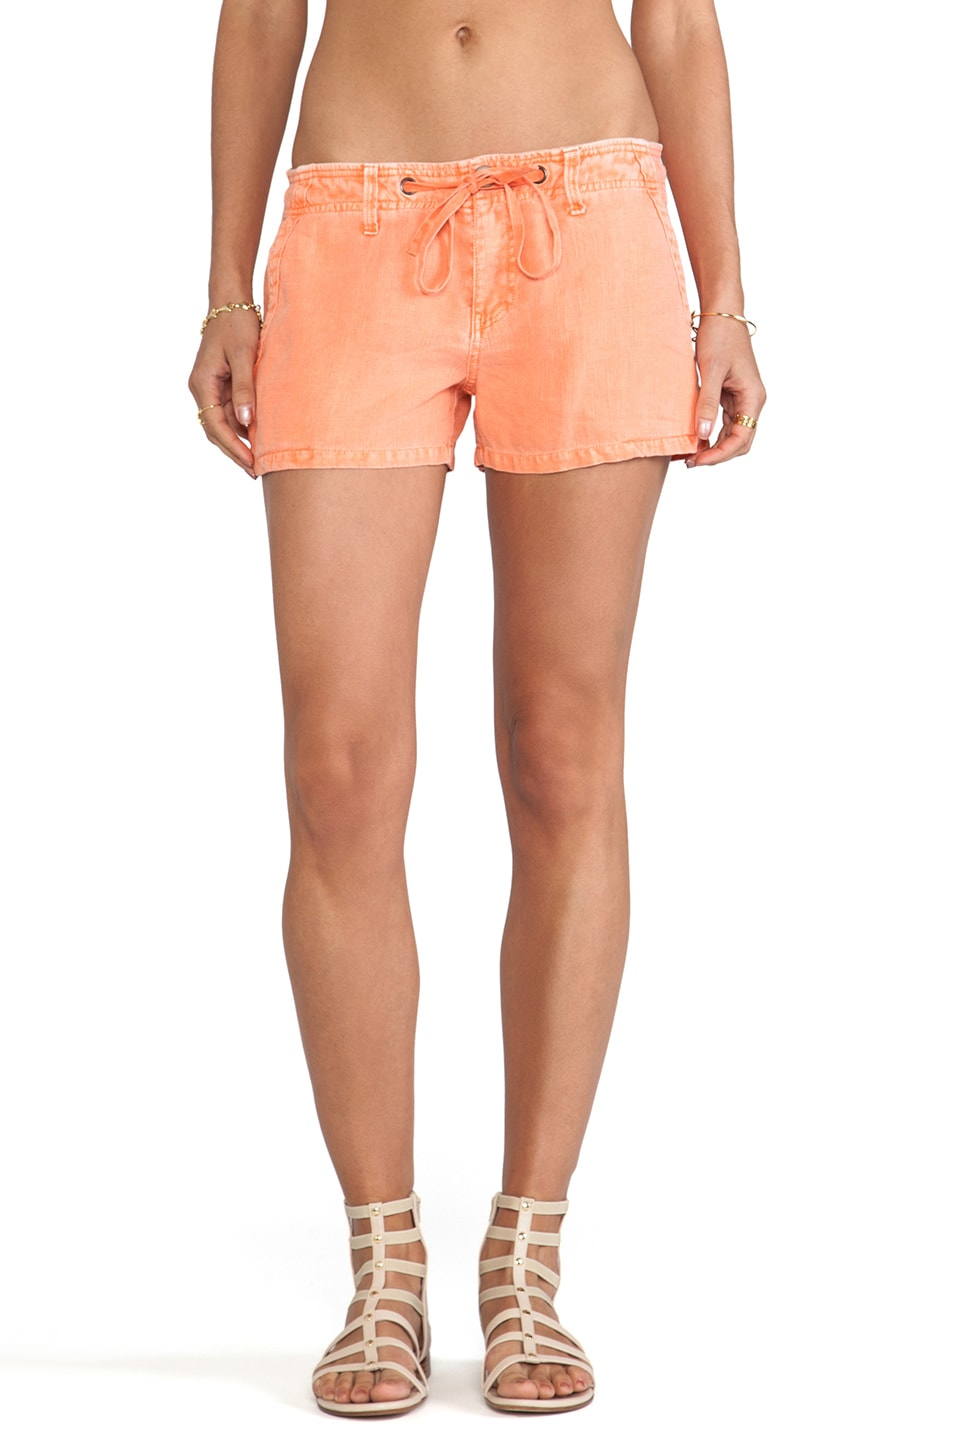 Sanctuary Surf Shorts in Grapefruit